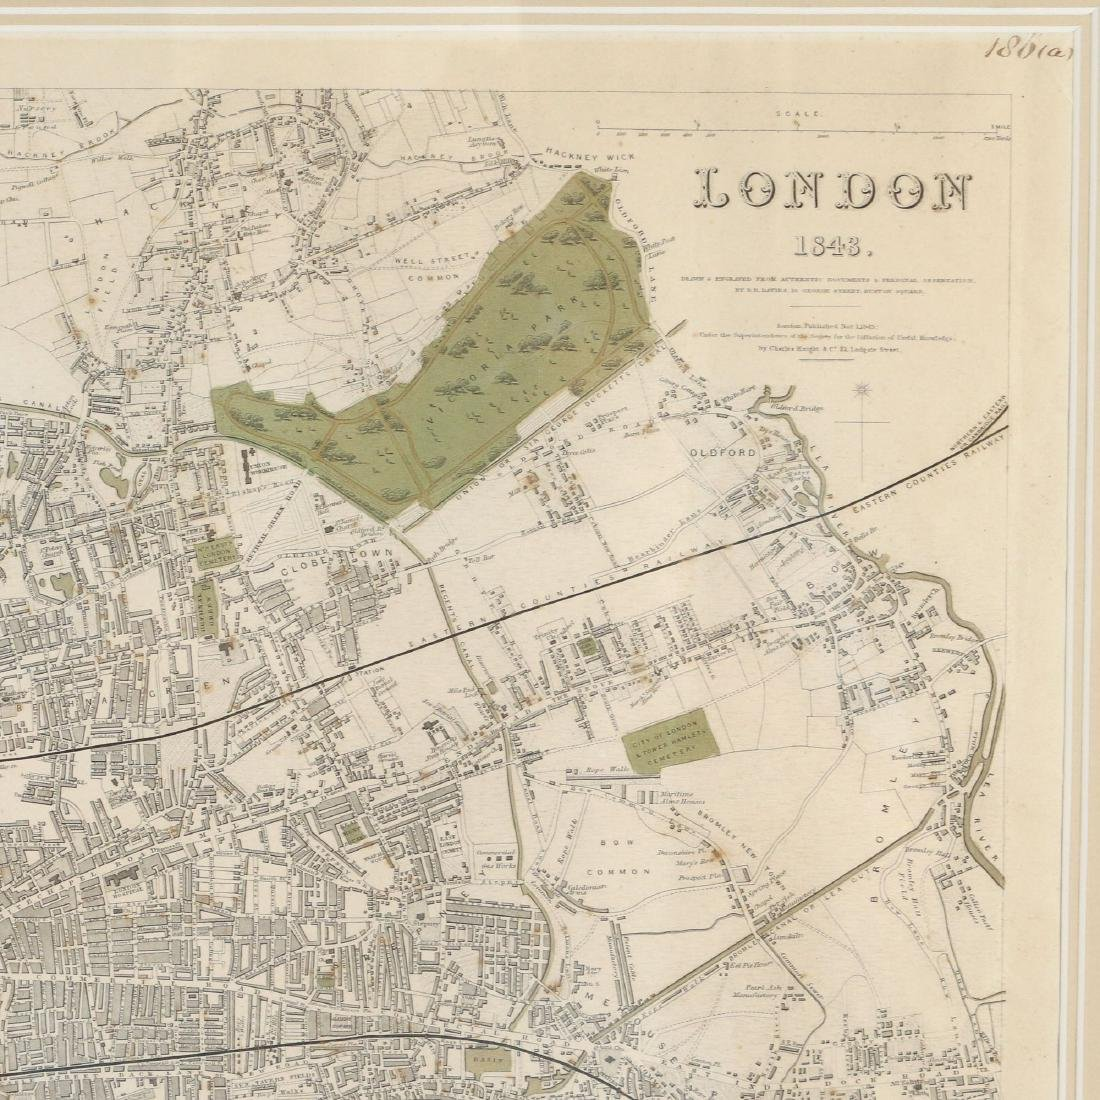 LARGE MAP OF LONDON, 1843 - 4